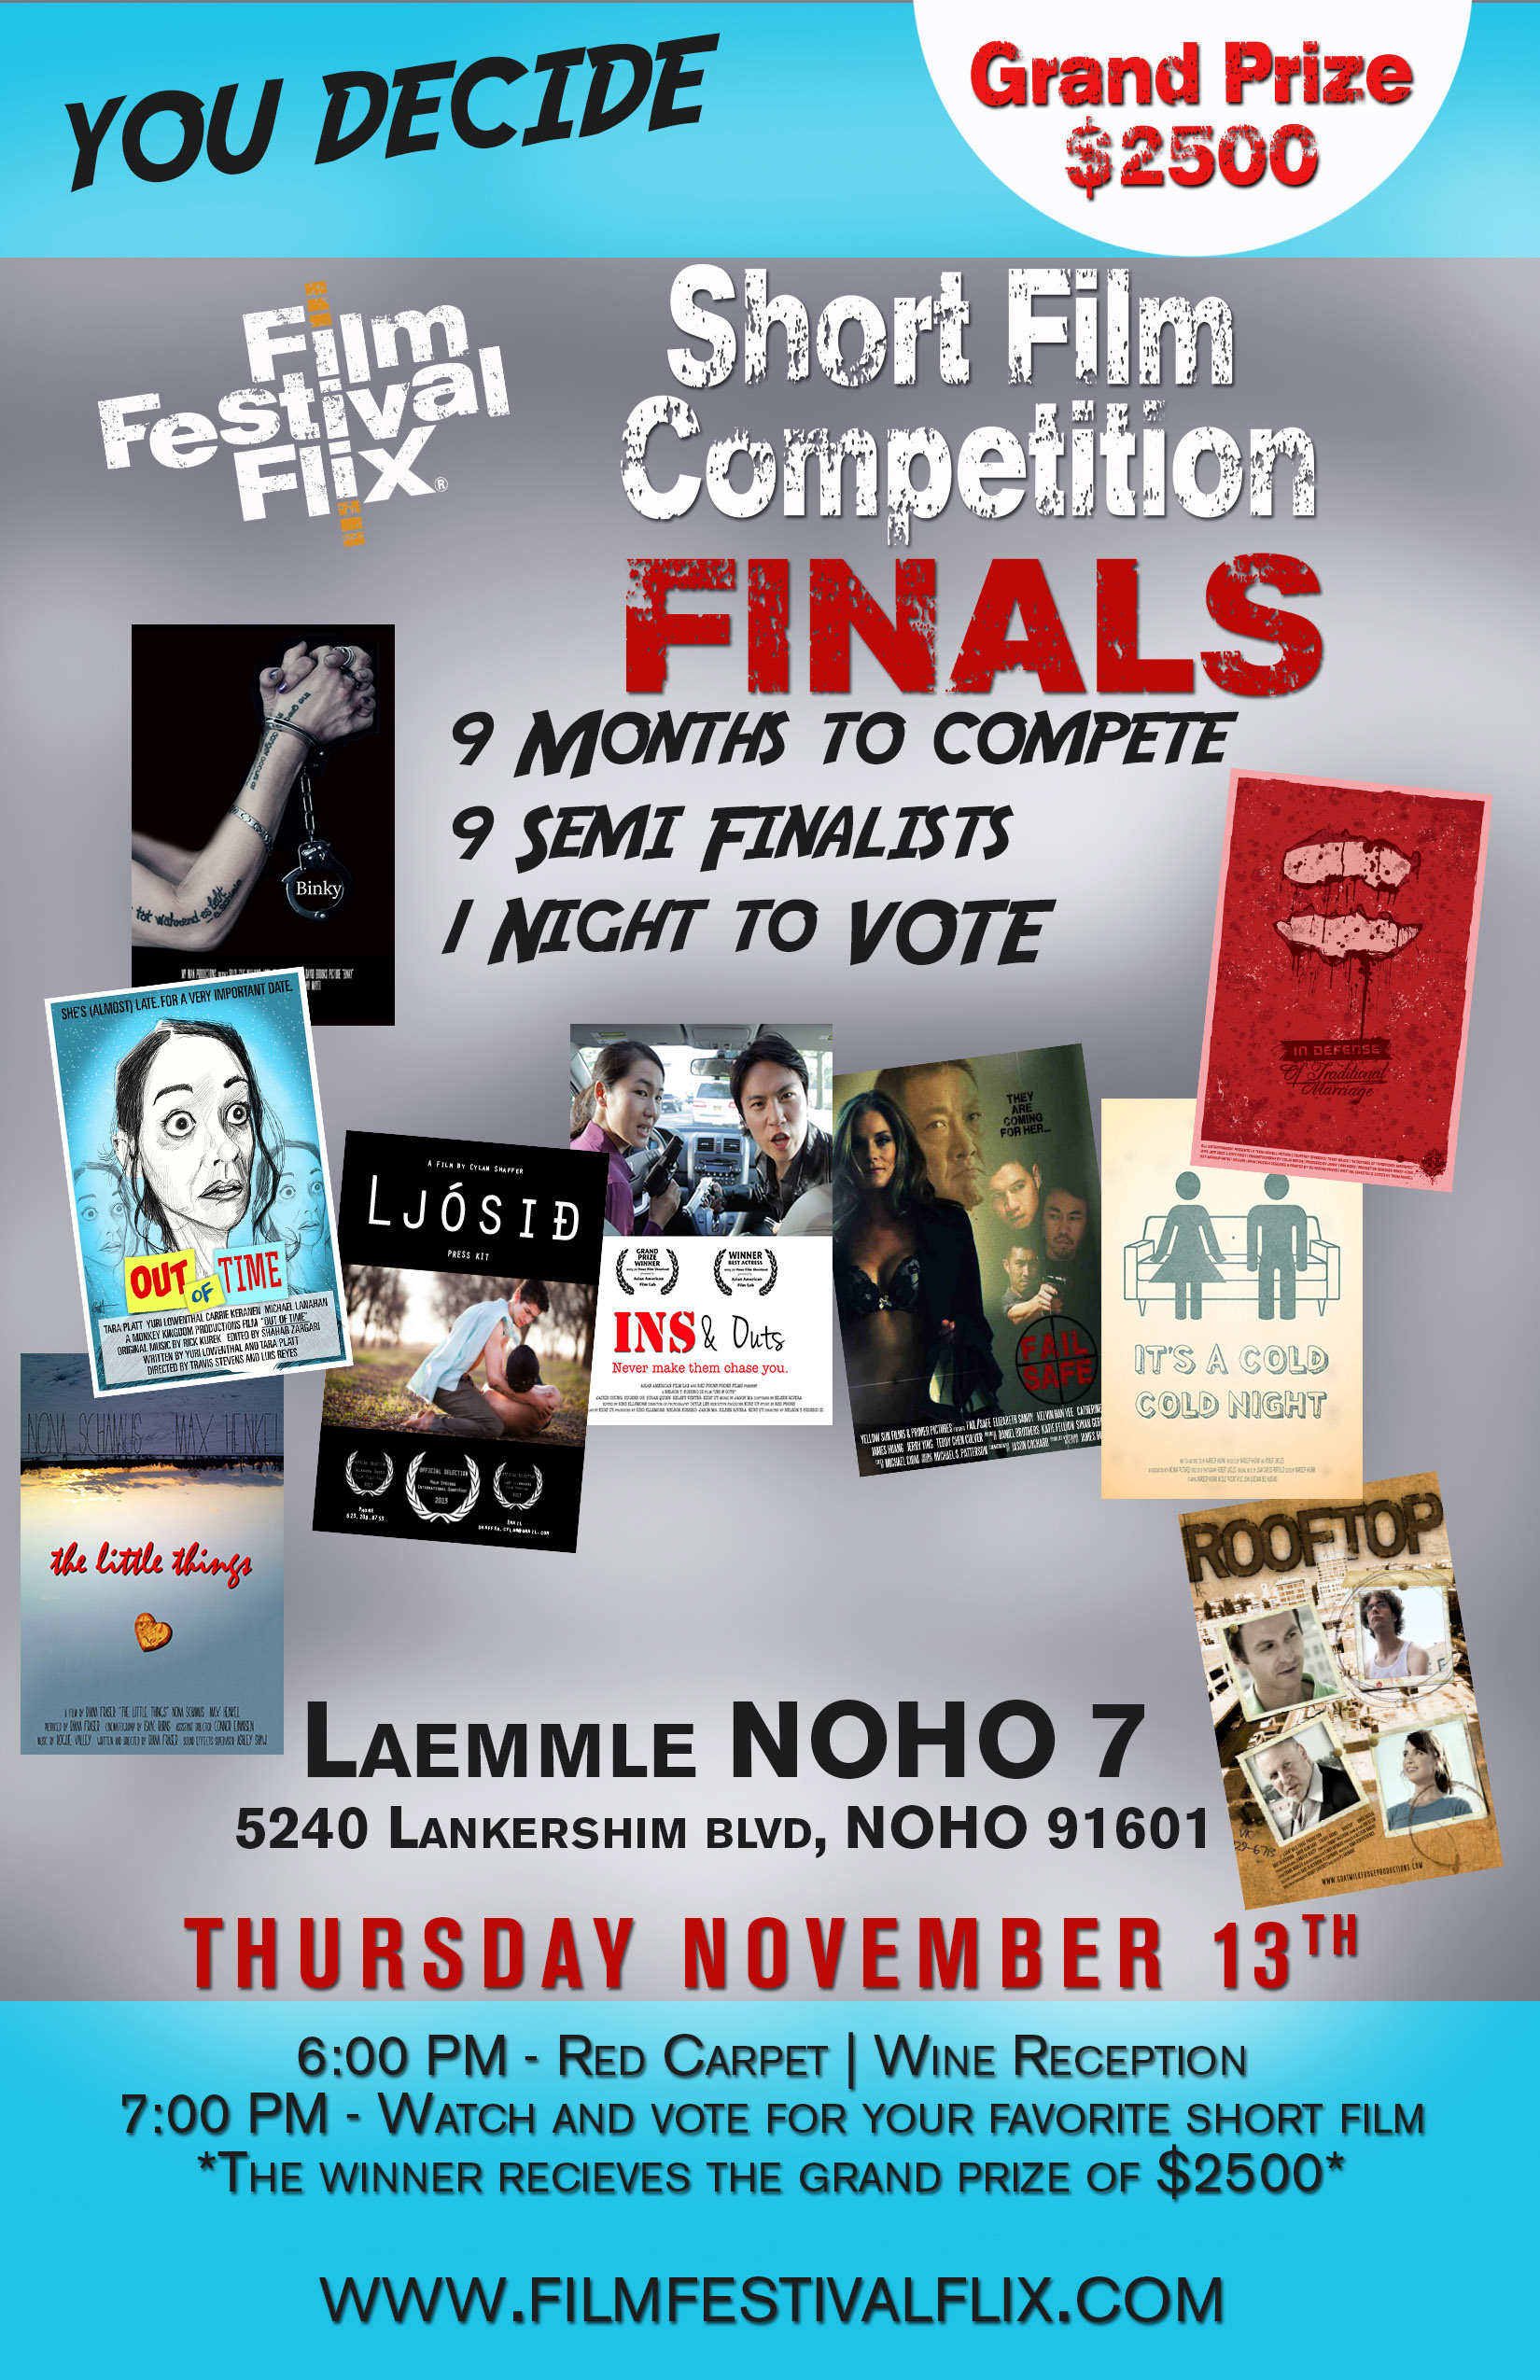 Details for the NOHO Short Film Competition Finals 2014